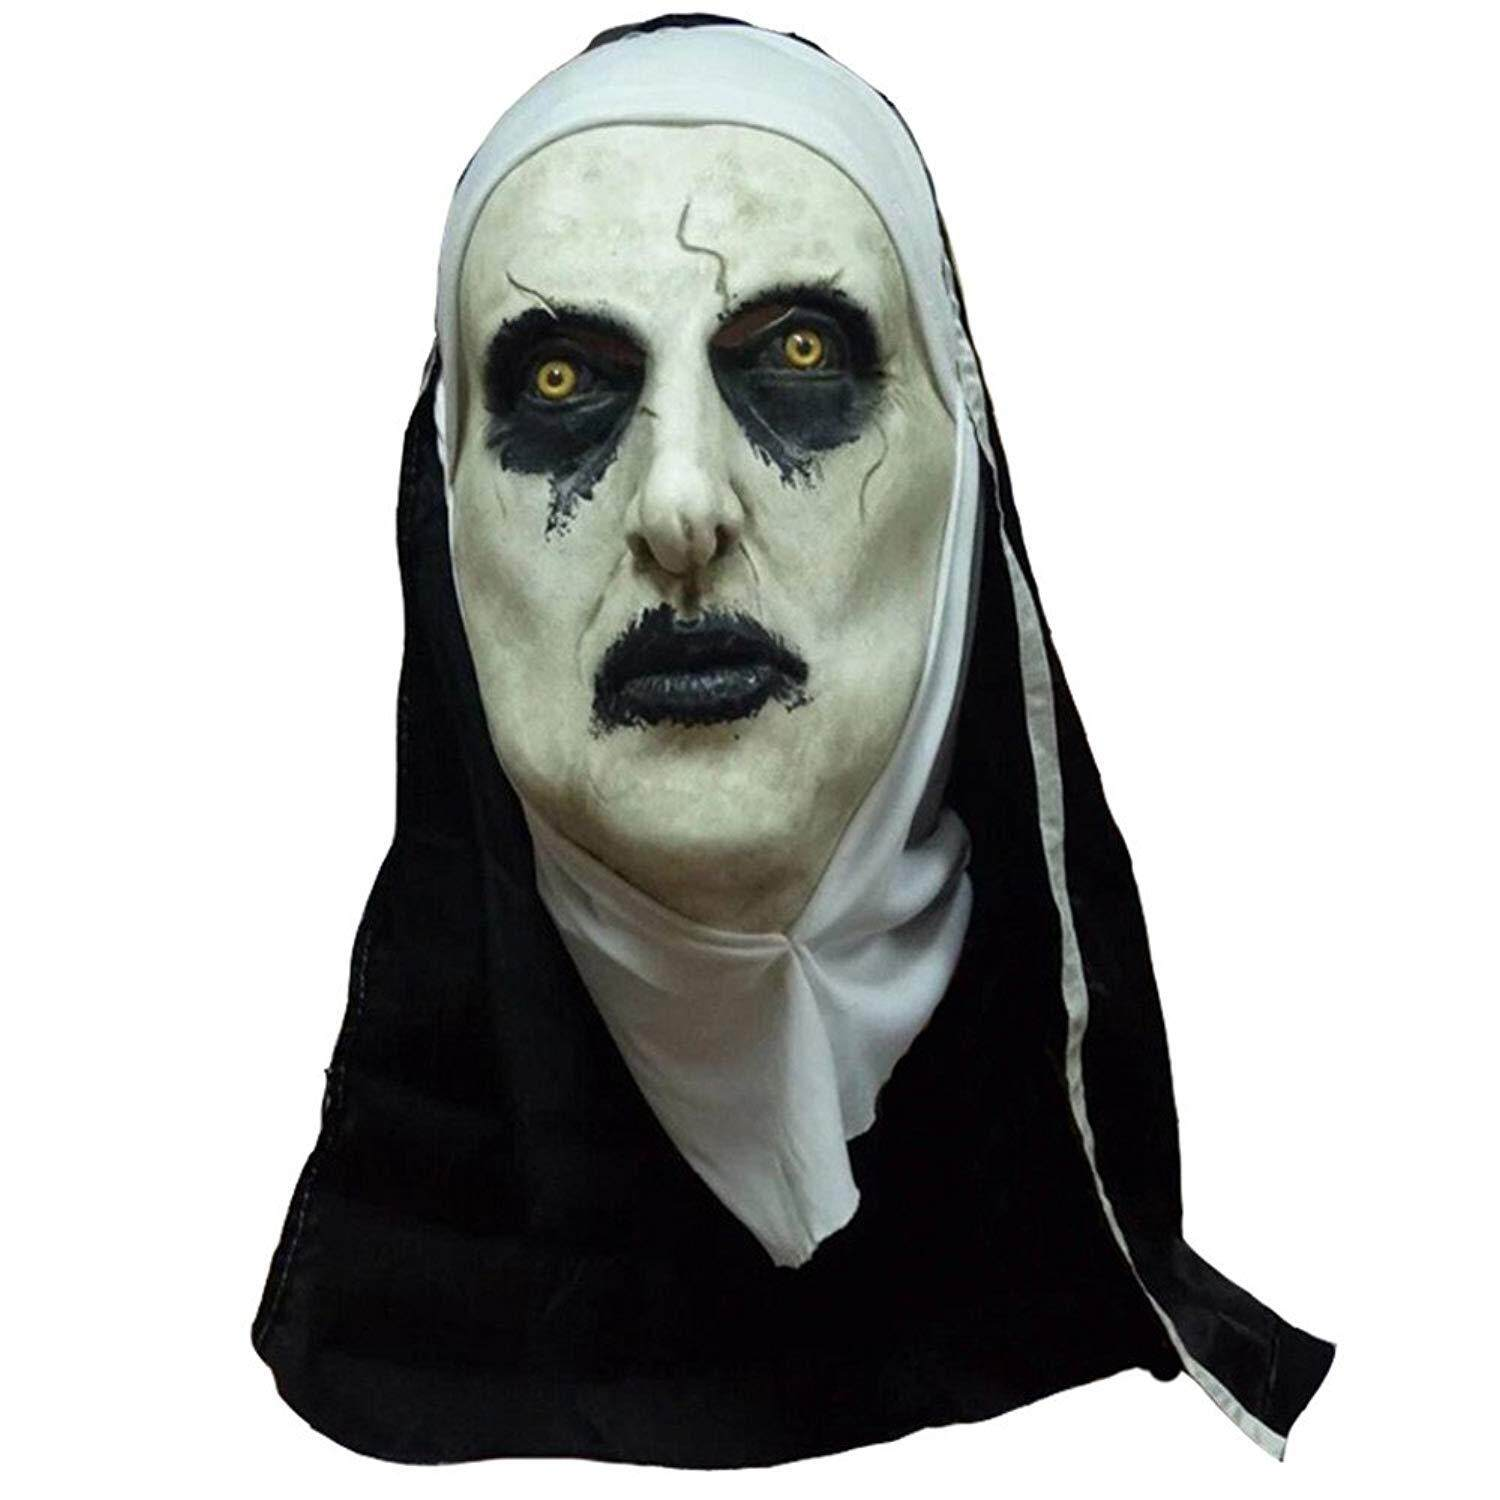 Hình ảnh 1 Pcs The Conjuring 2 Mask Cosplay The Nun Valak Scary Latex Masks With Headscarf Full Face Helmet Halloween Party Props